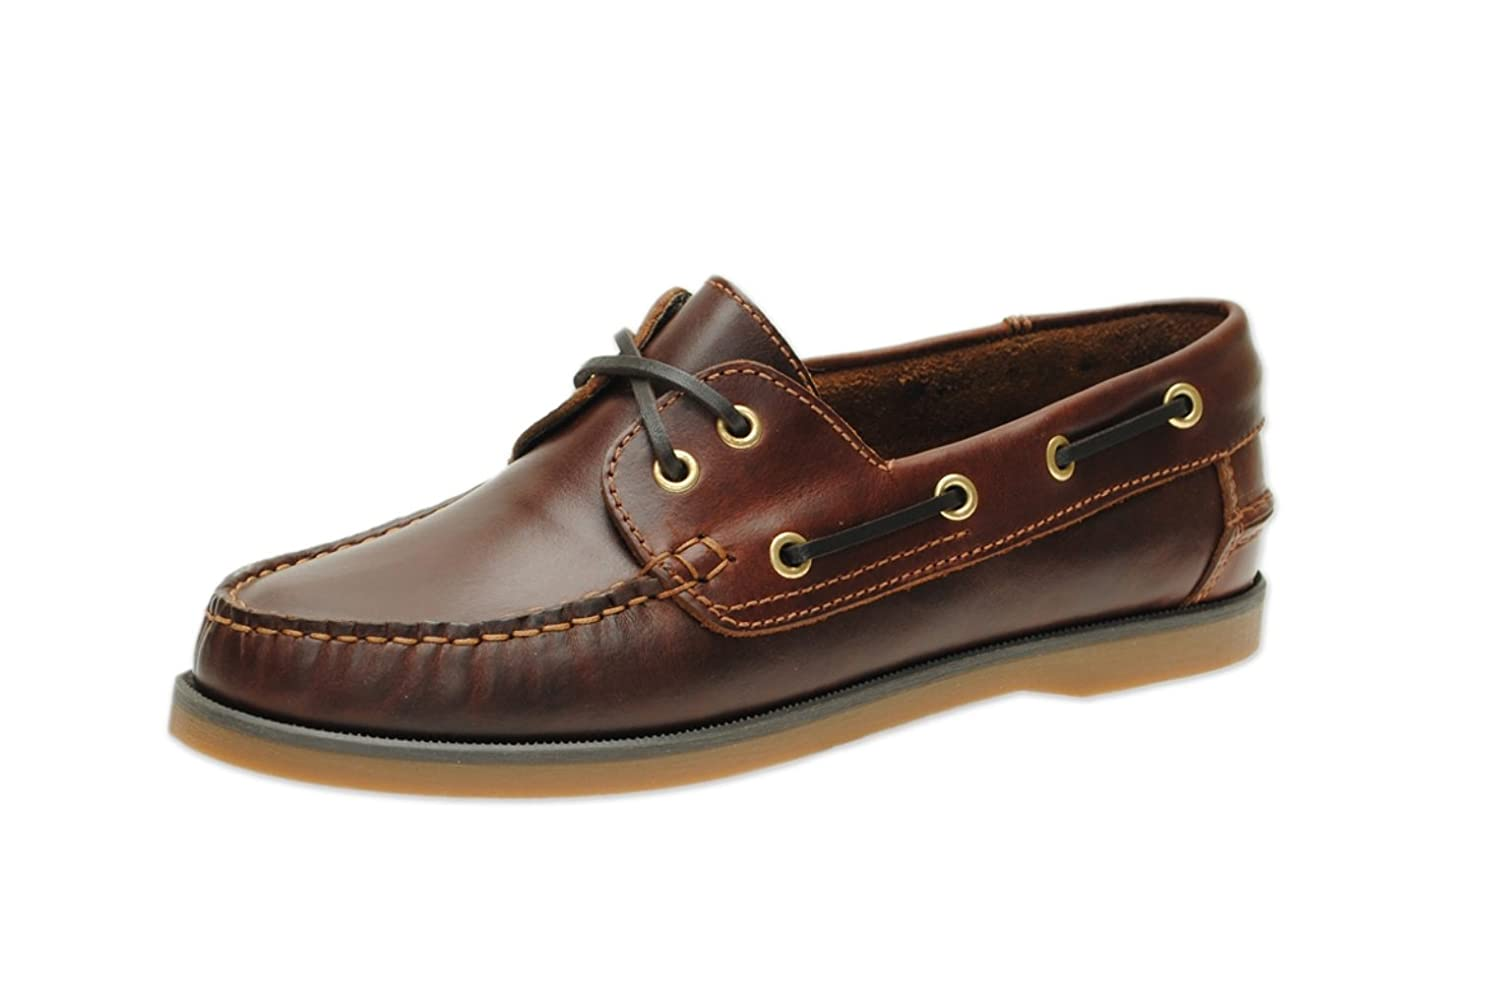 51bba66dbfc Jim Boomba Boat Shoe - Deck Shoe Classic Style - Mahogany Brown:  Amazon.co.uk: Shoes & Bags